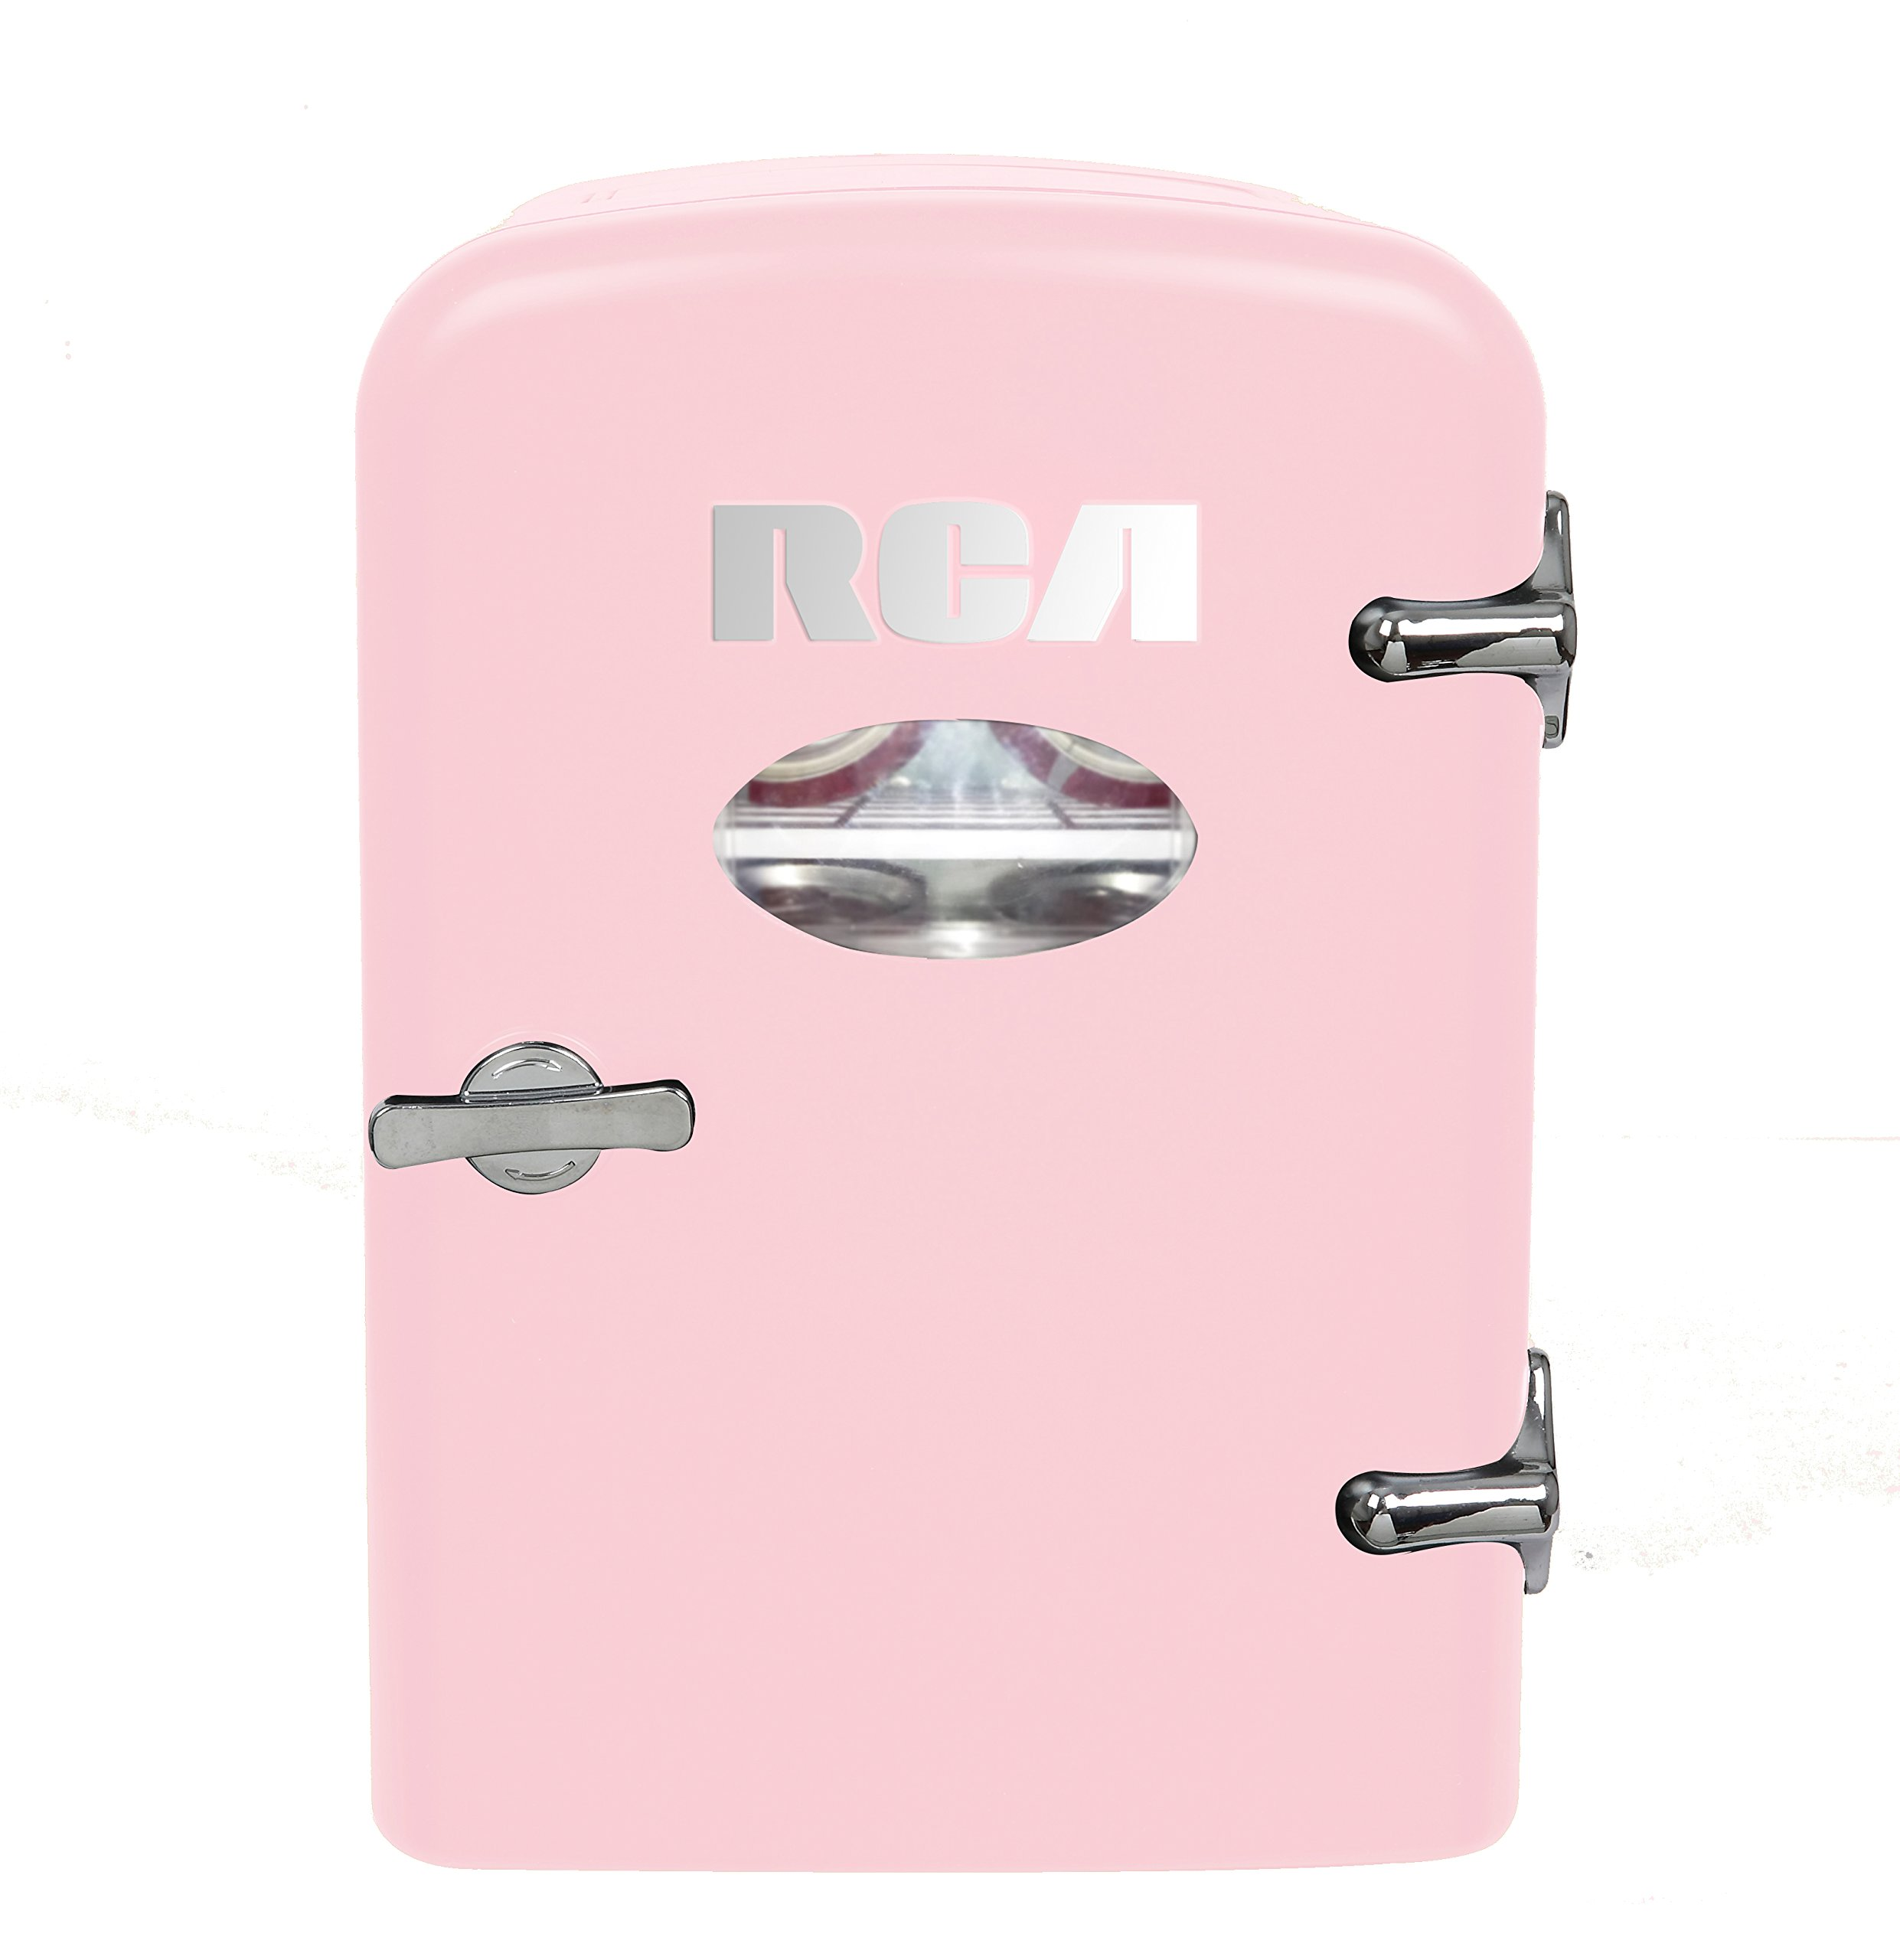 RCA Mini Compact Beverage Refrigerator, Pink, Great for keeping office lunch cool!